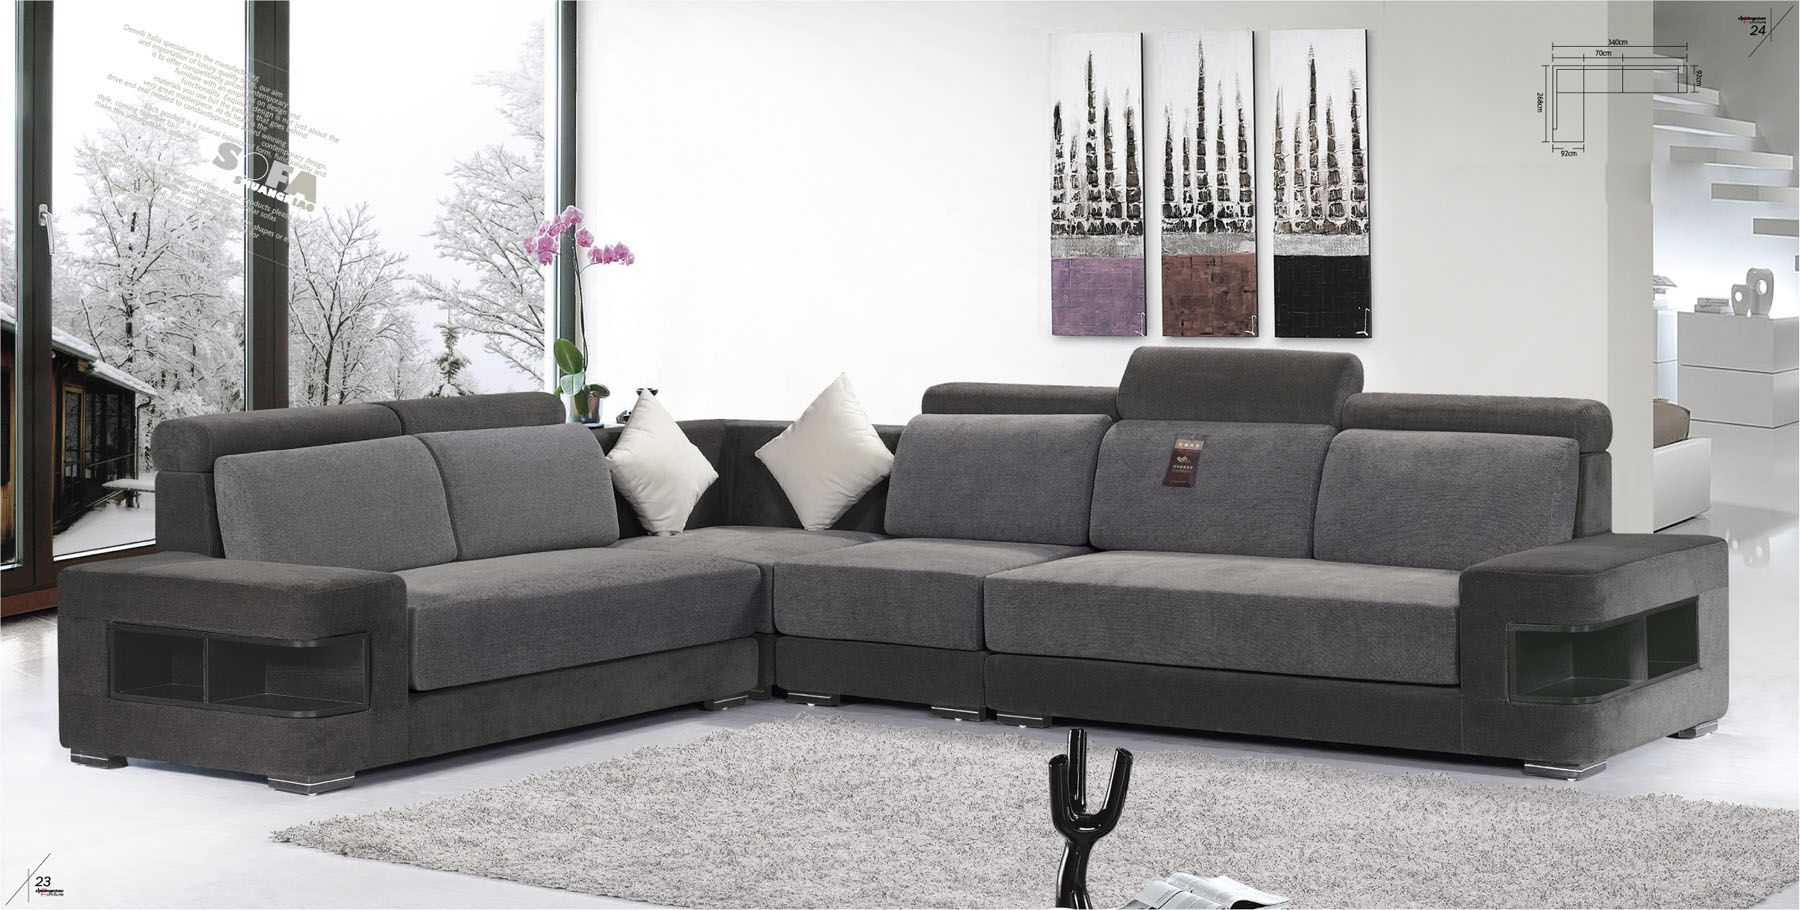 Best Modern L Shaped Sofa And Living Room L Shaped Sofa Sets 400 x 300